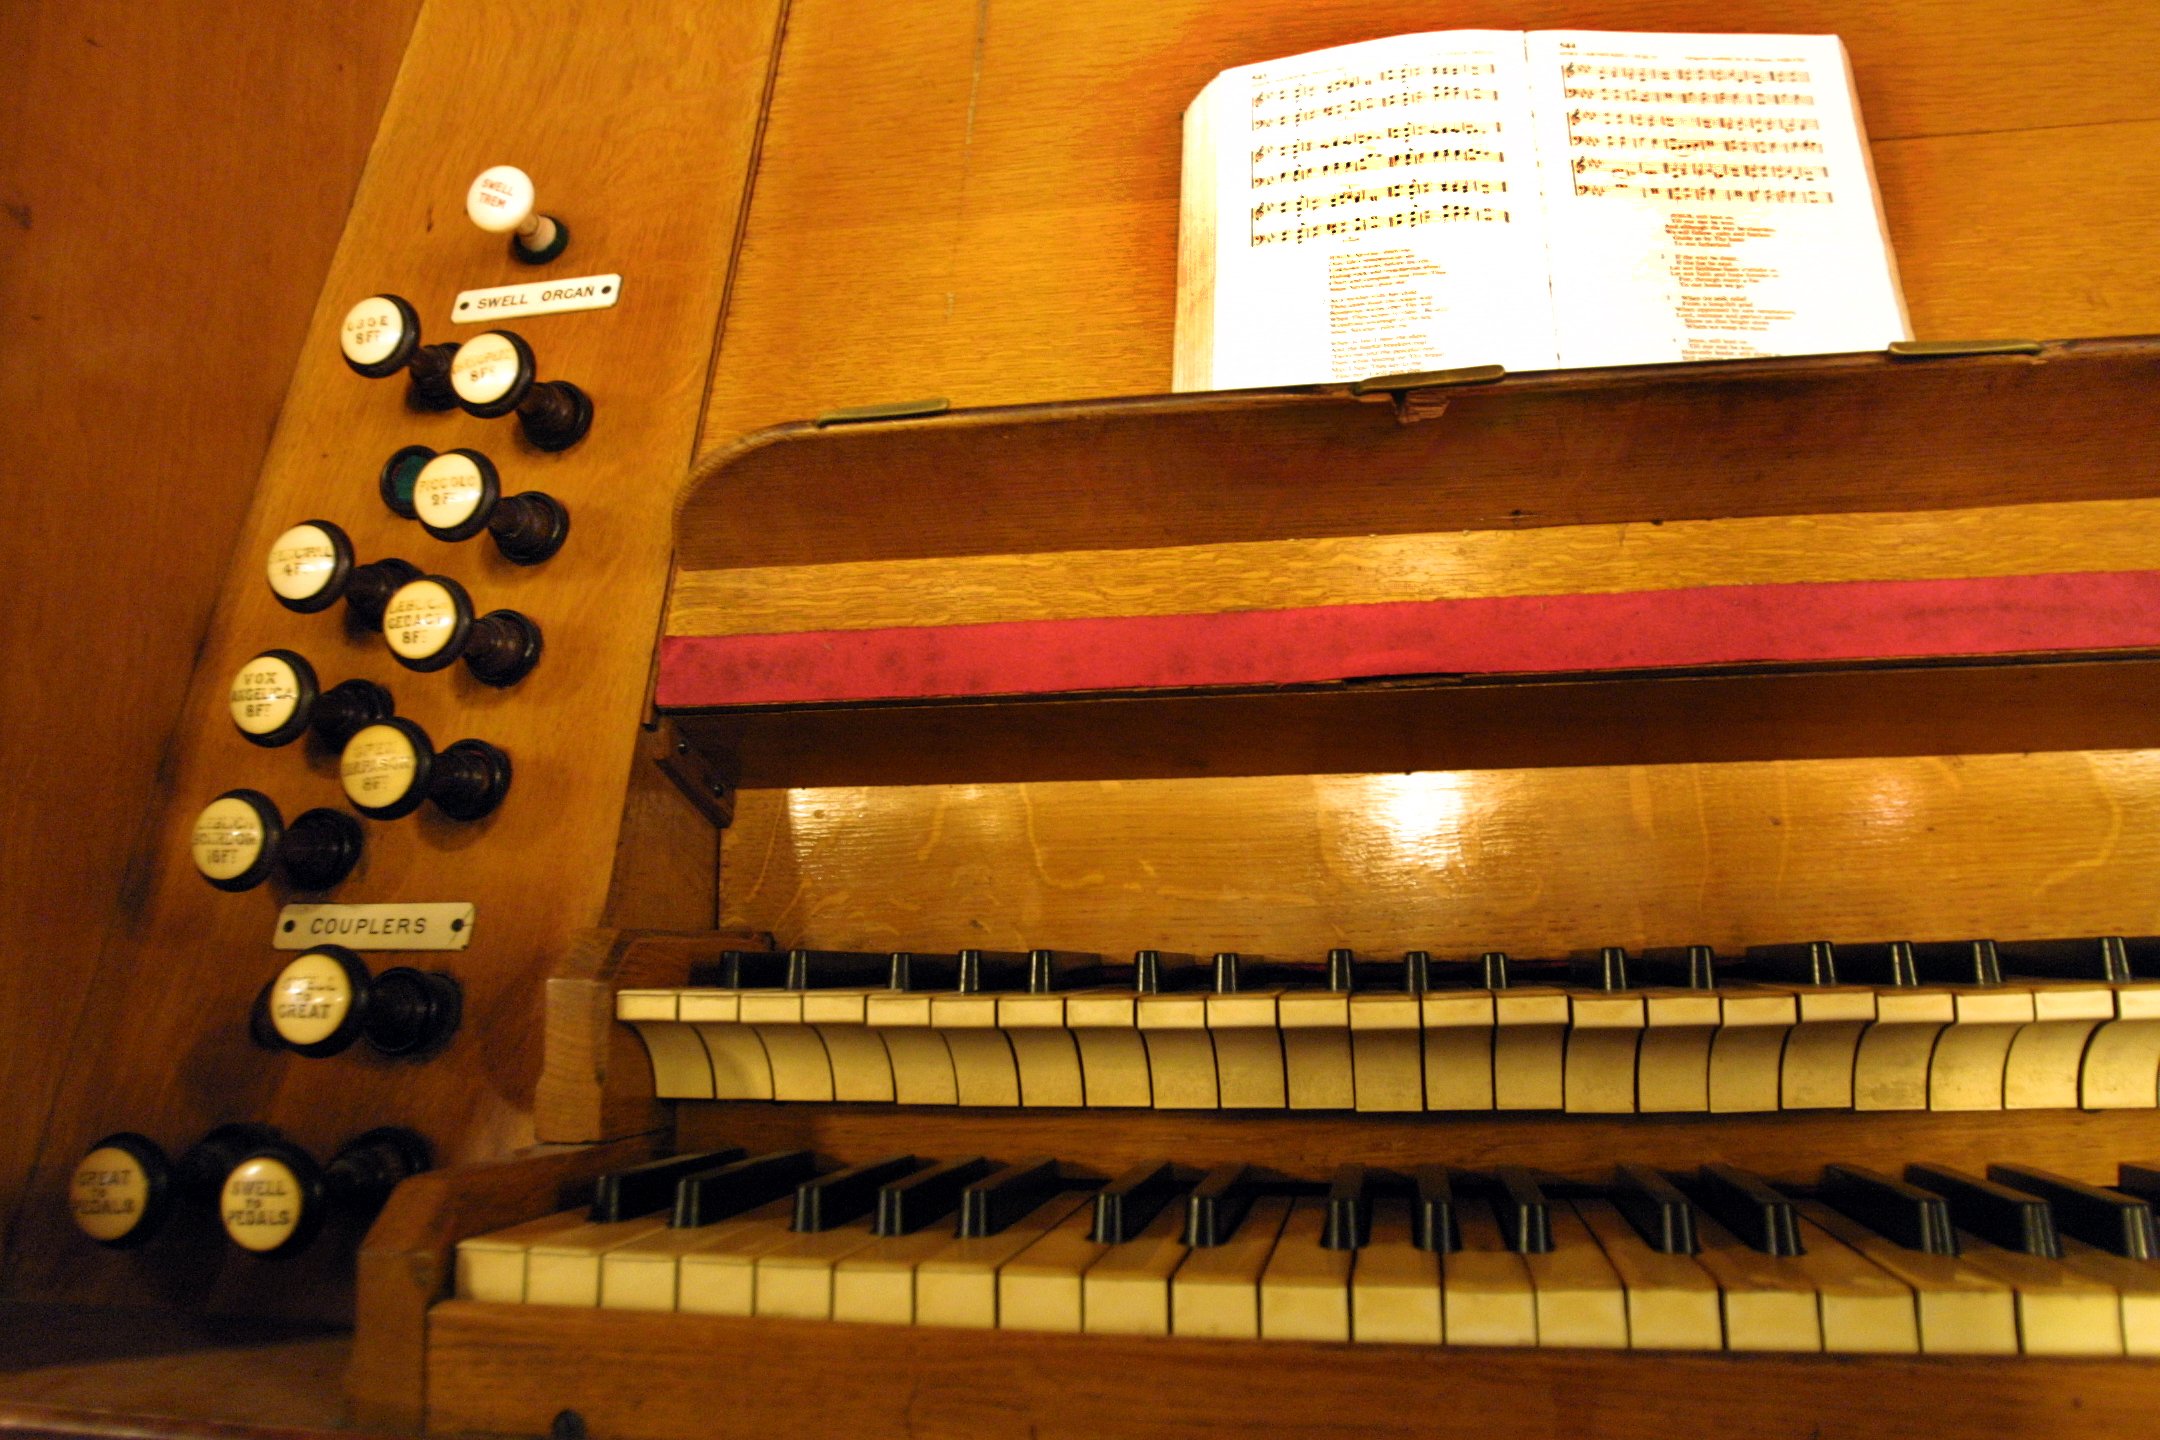 42. Try out the organ